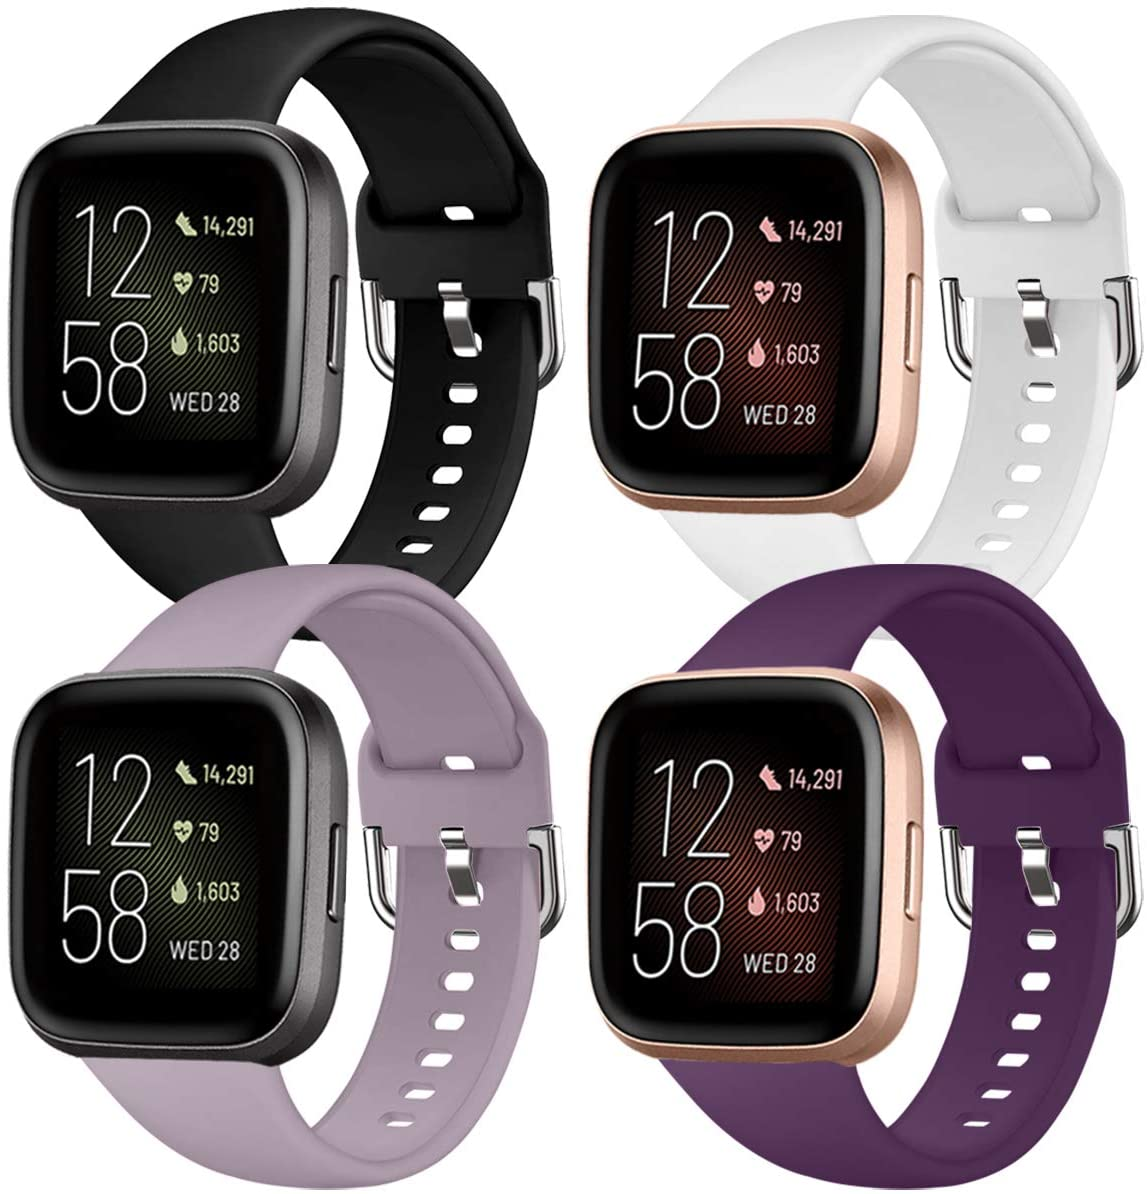 QIBOX 4-Pack Sport Bands Compatible with Fitbit Versa 2, Soft Silicone Waterproof Breathable Watch Strap Replacement Wristband Accessories Women Man for Versa Smart Watch